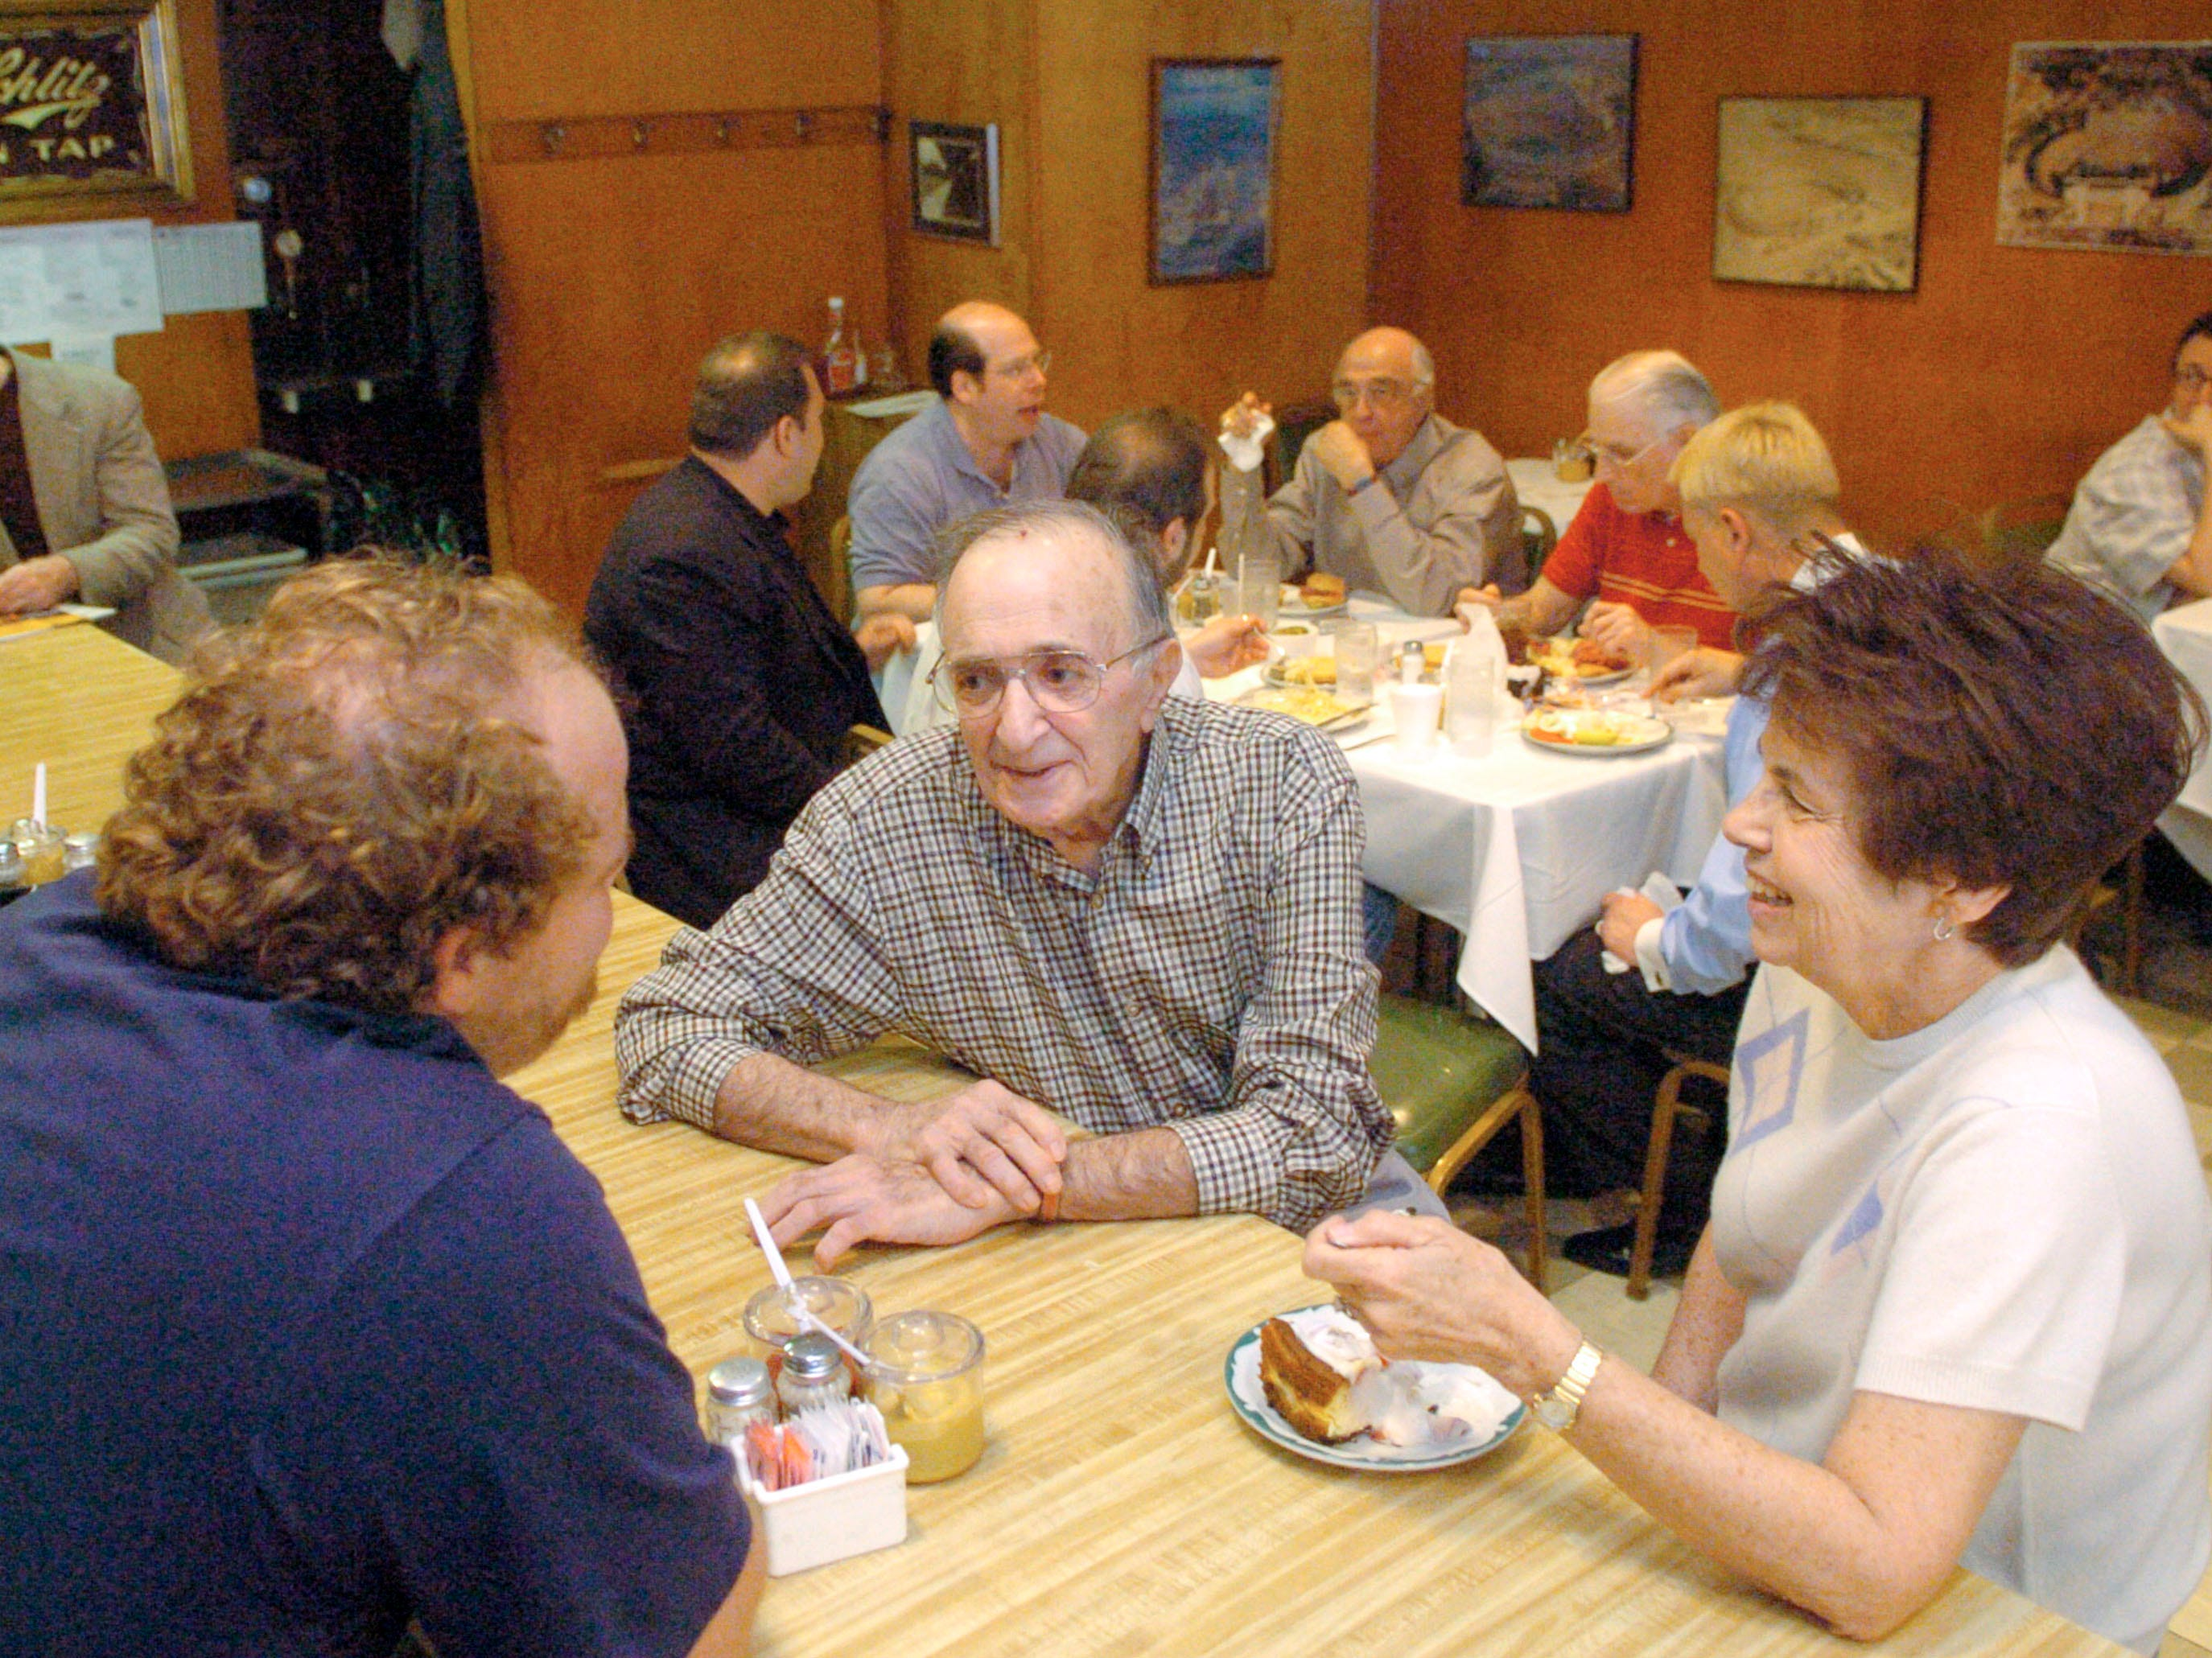 In 2005, Bruce Bogartz talks with Harold Sherskey, who has operated Harold's Kosher Deli for over 50 years and  Marilyn Burnett, a long time customer and friend of Sherskey's. Harold's Kosher Style Deli at 131 N. Gay Street is changing owners. After operating the N. Gay Street Deli for over 50 years, Sherskey is turning over day to day management of the landmark to local chef Bruce Bogartz.